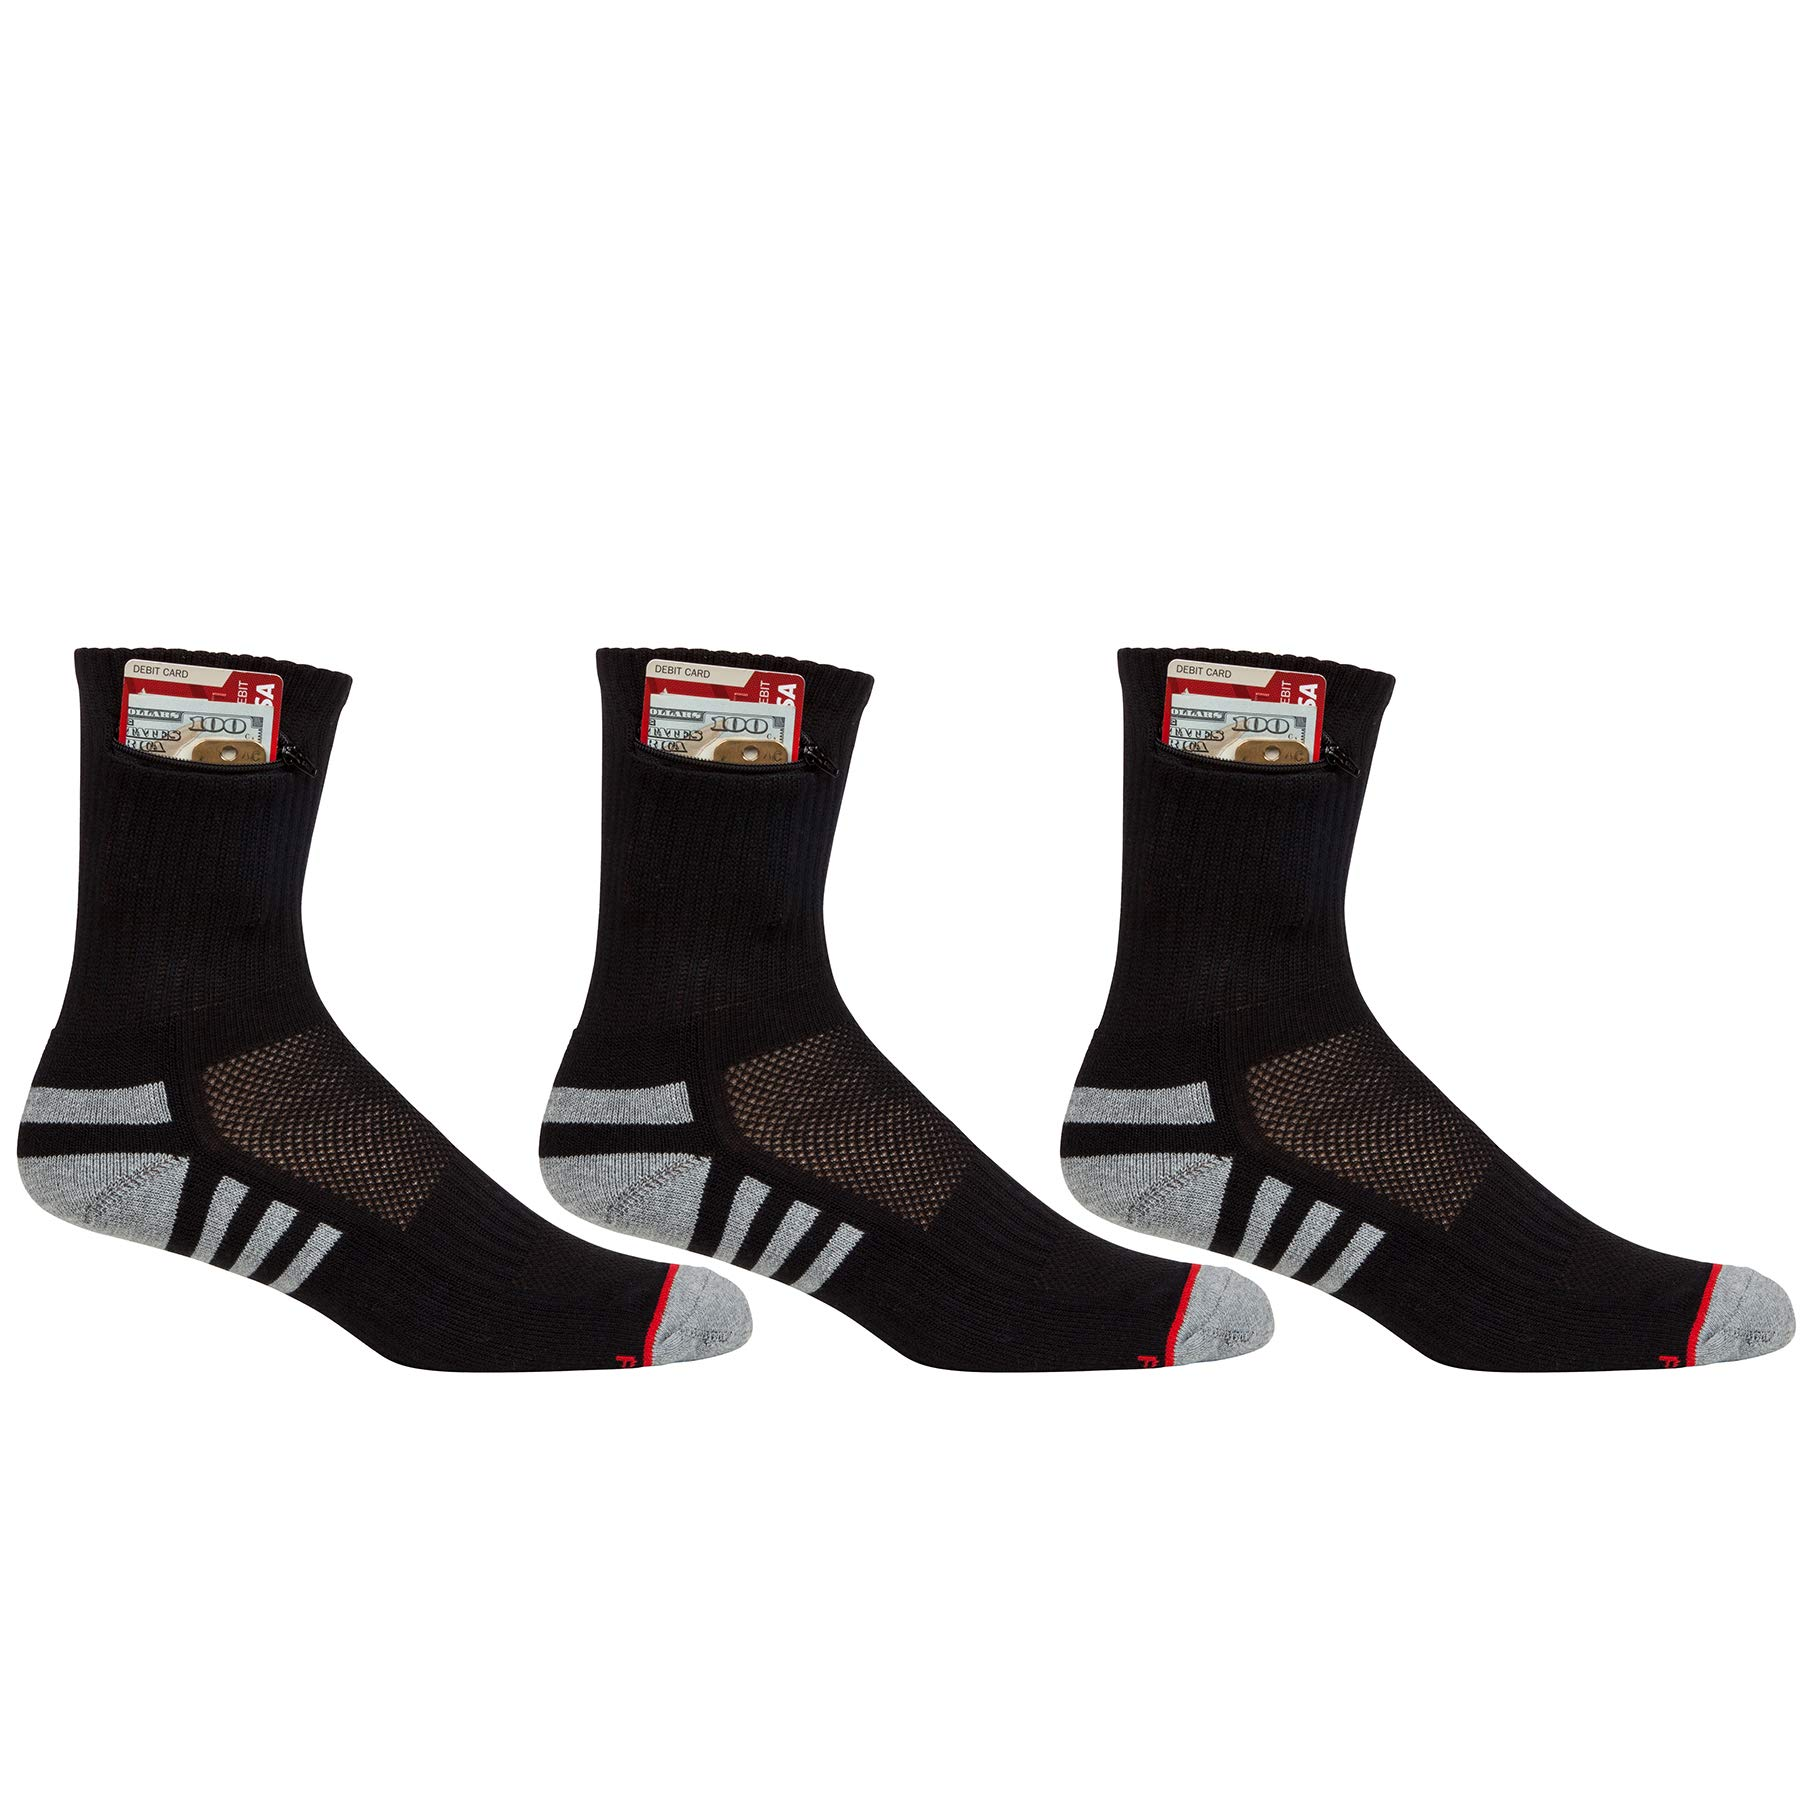 Pocket Socks Women's 3-Pack Athletic Travel Ankle Socks with Zip Security Pocket for ID, Key or Cash Money, One Size Fits Most, Black, 3 Pair